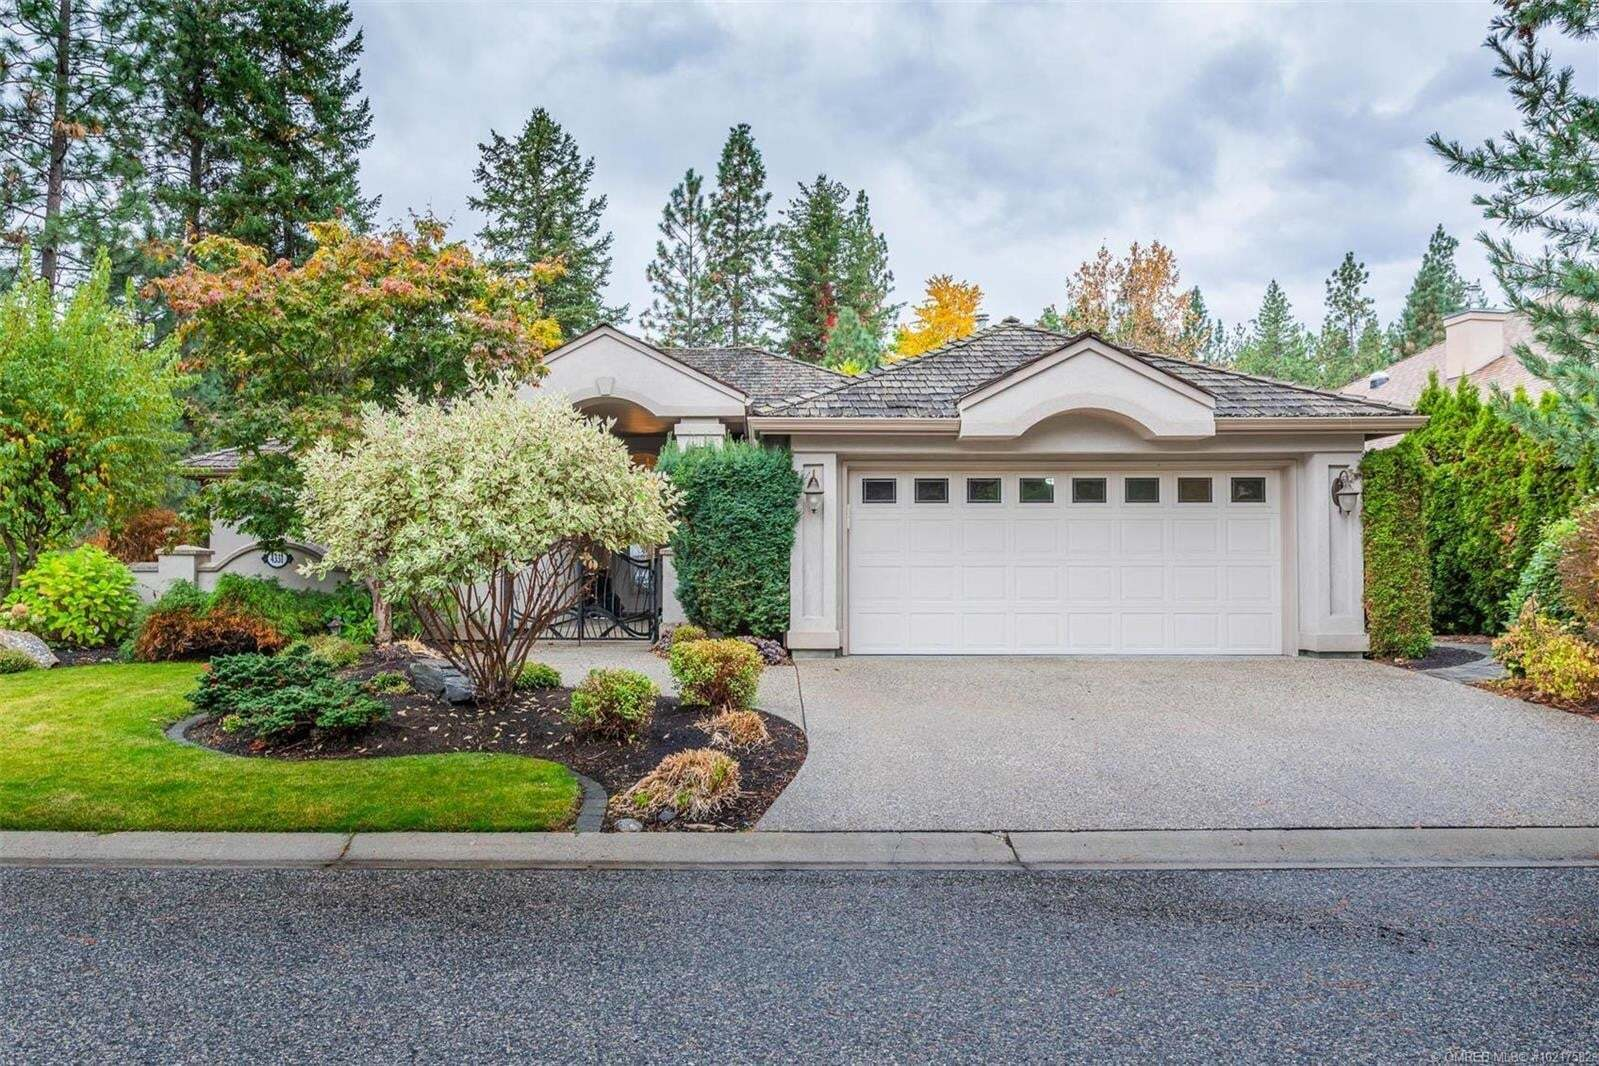 House for sale at 4331 Gallaghers Forest South Kelowna British Columbia - MLS: 10217582